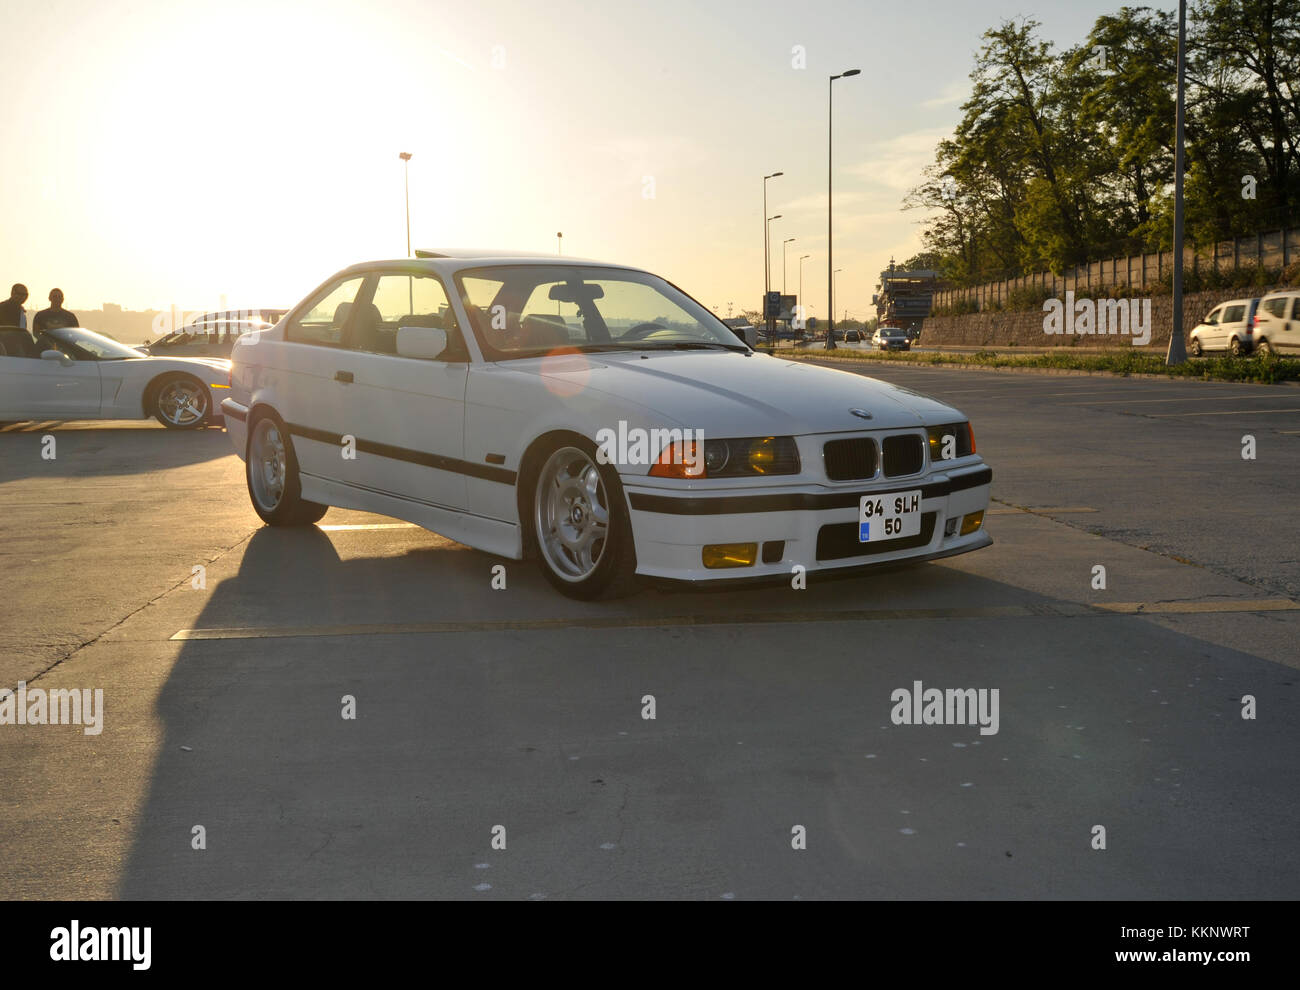 Modified Bmw E36 3 Series Coupe Lowered On M3 Wheels Stock Photo